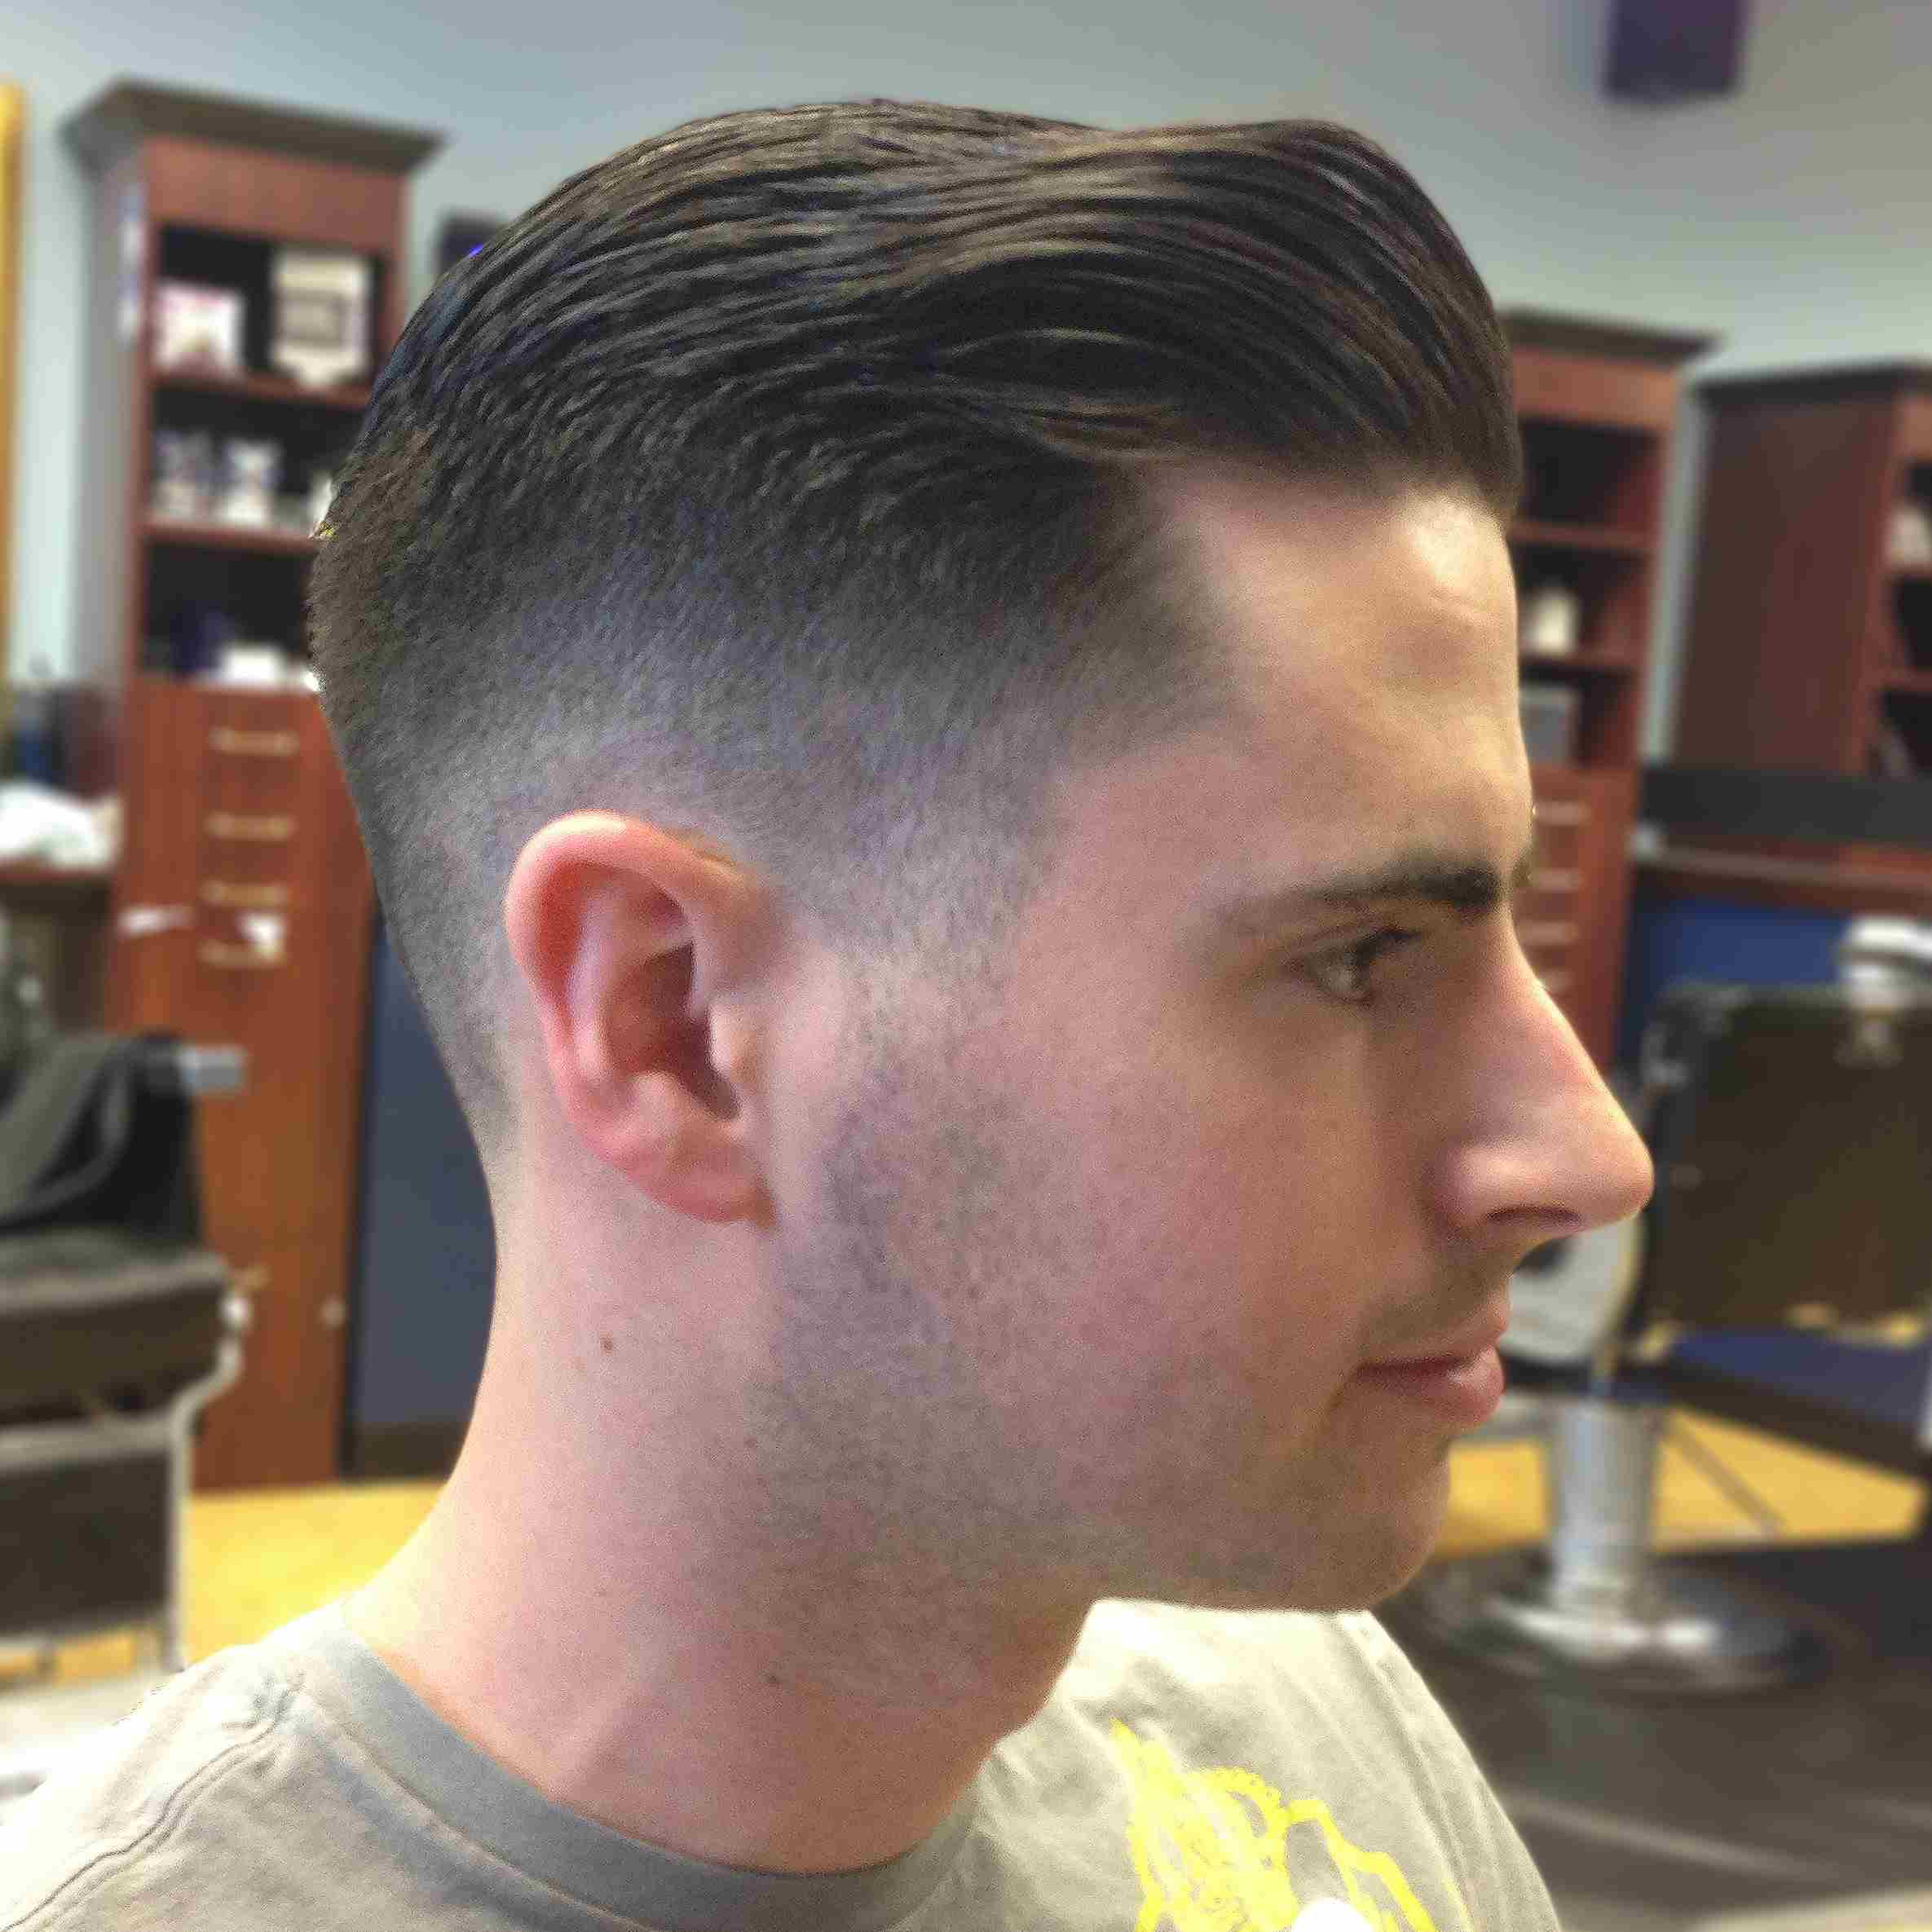 The Classic Taper Haircut